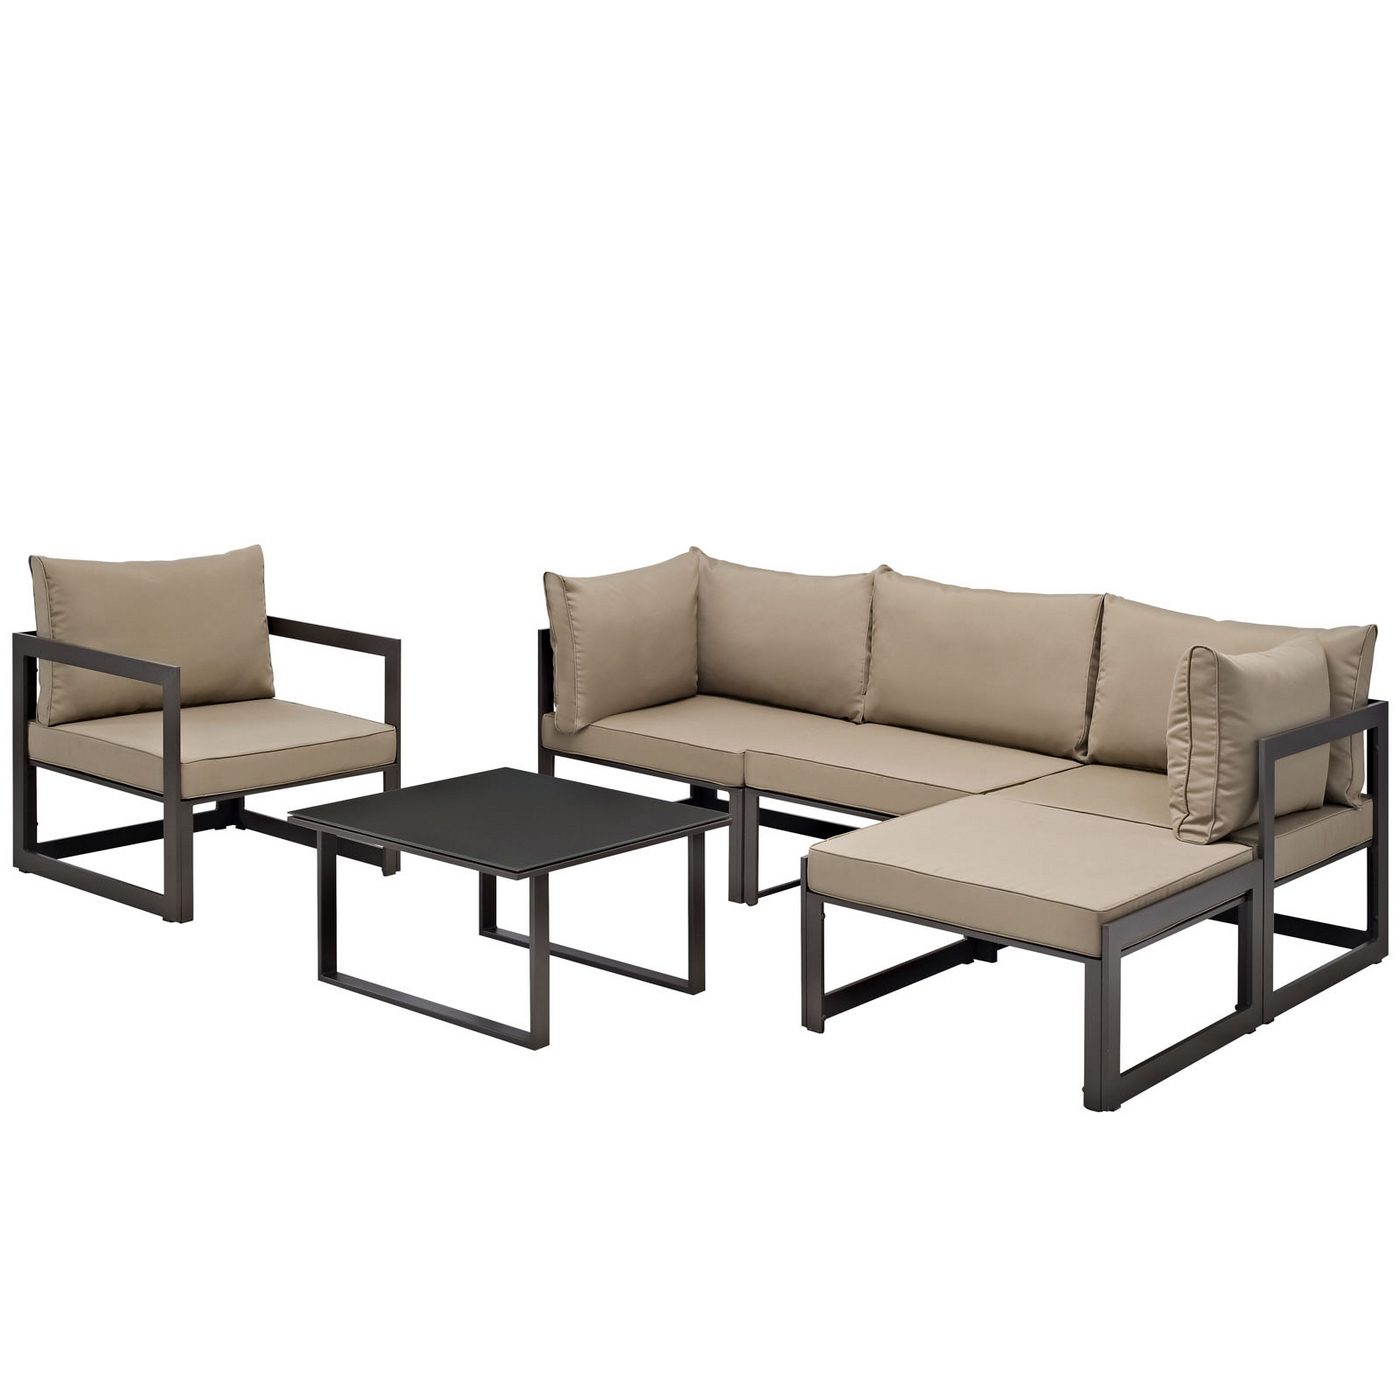 Ebay Sofa Sets Details About Fortuna 6 Piece Outdoor Patio Sectional Sofa Set W Upholstered Seat Brown Mocha